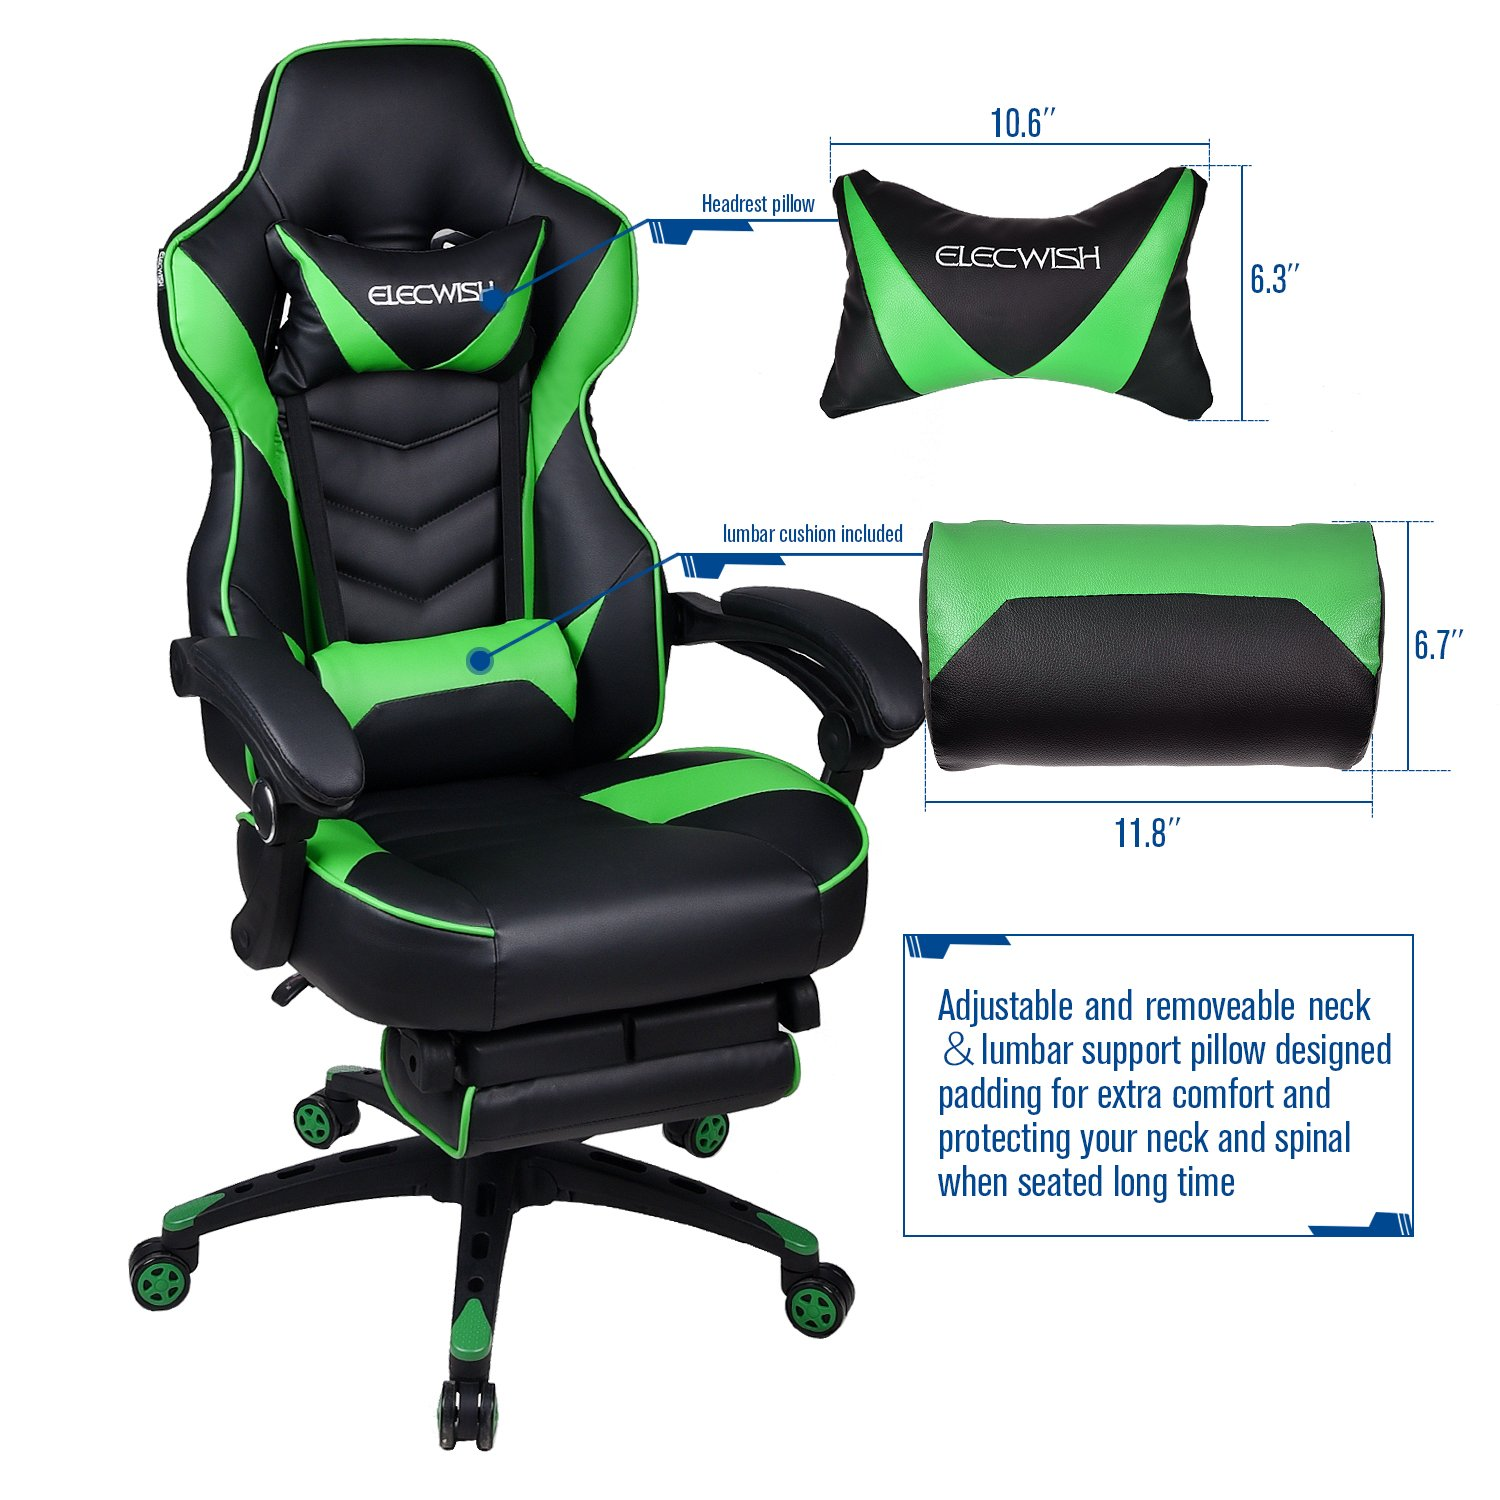 Enjoyable Gaming Chair Black Green For Adults With Footrest High Back Swivel Computer Office Chair With Pillows And Lumber Support Ocoug Best Dining Table And Chair Ideas Images Ocougorg